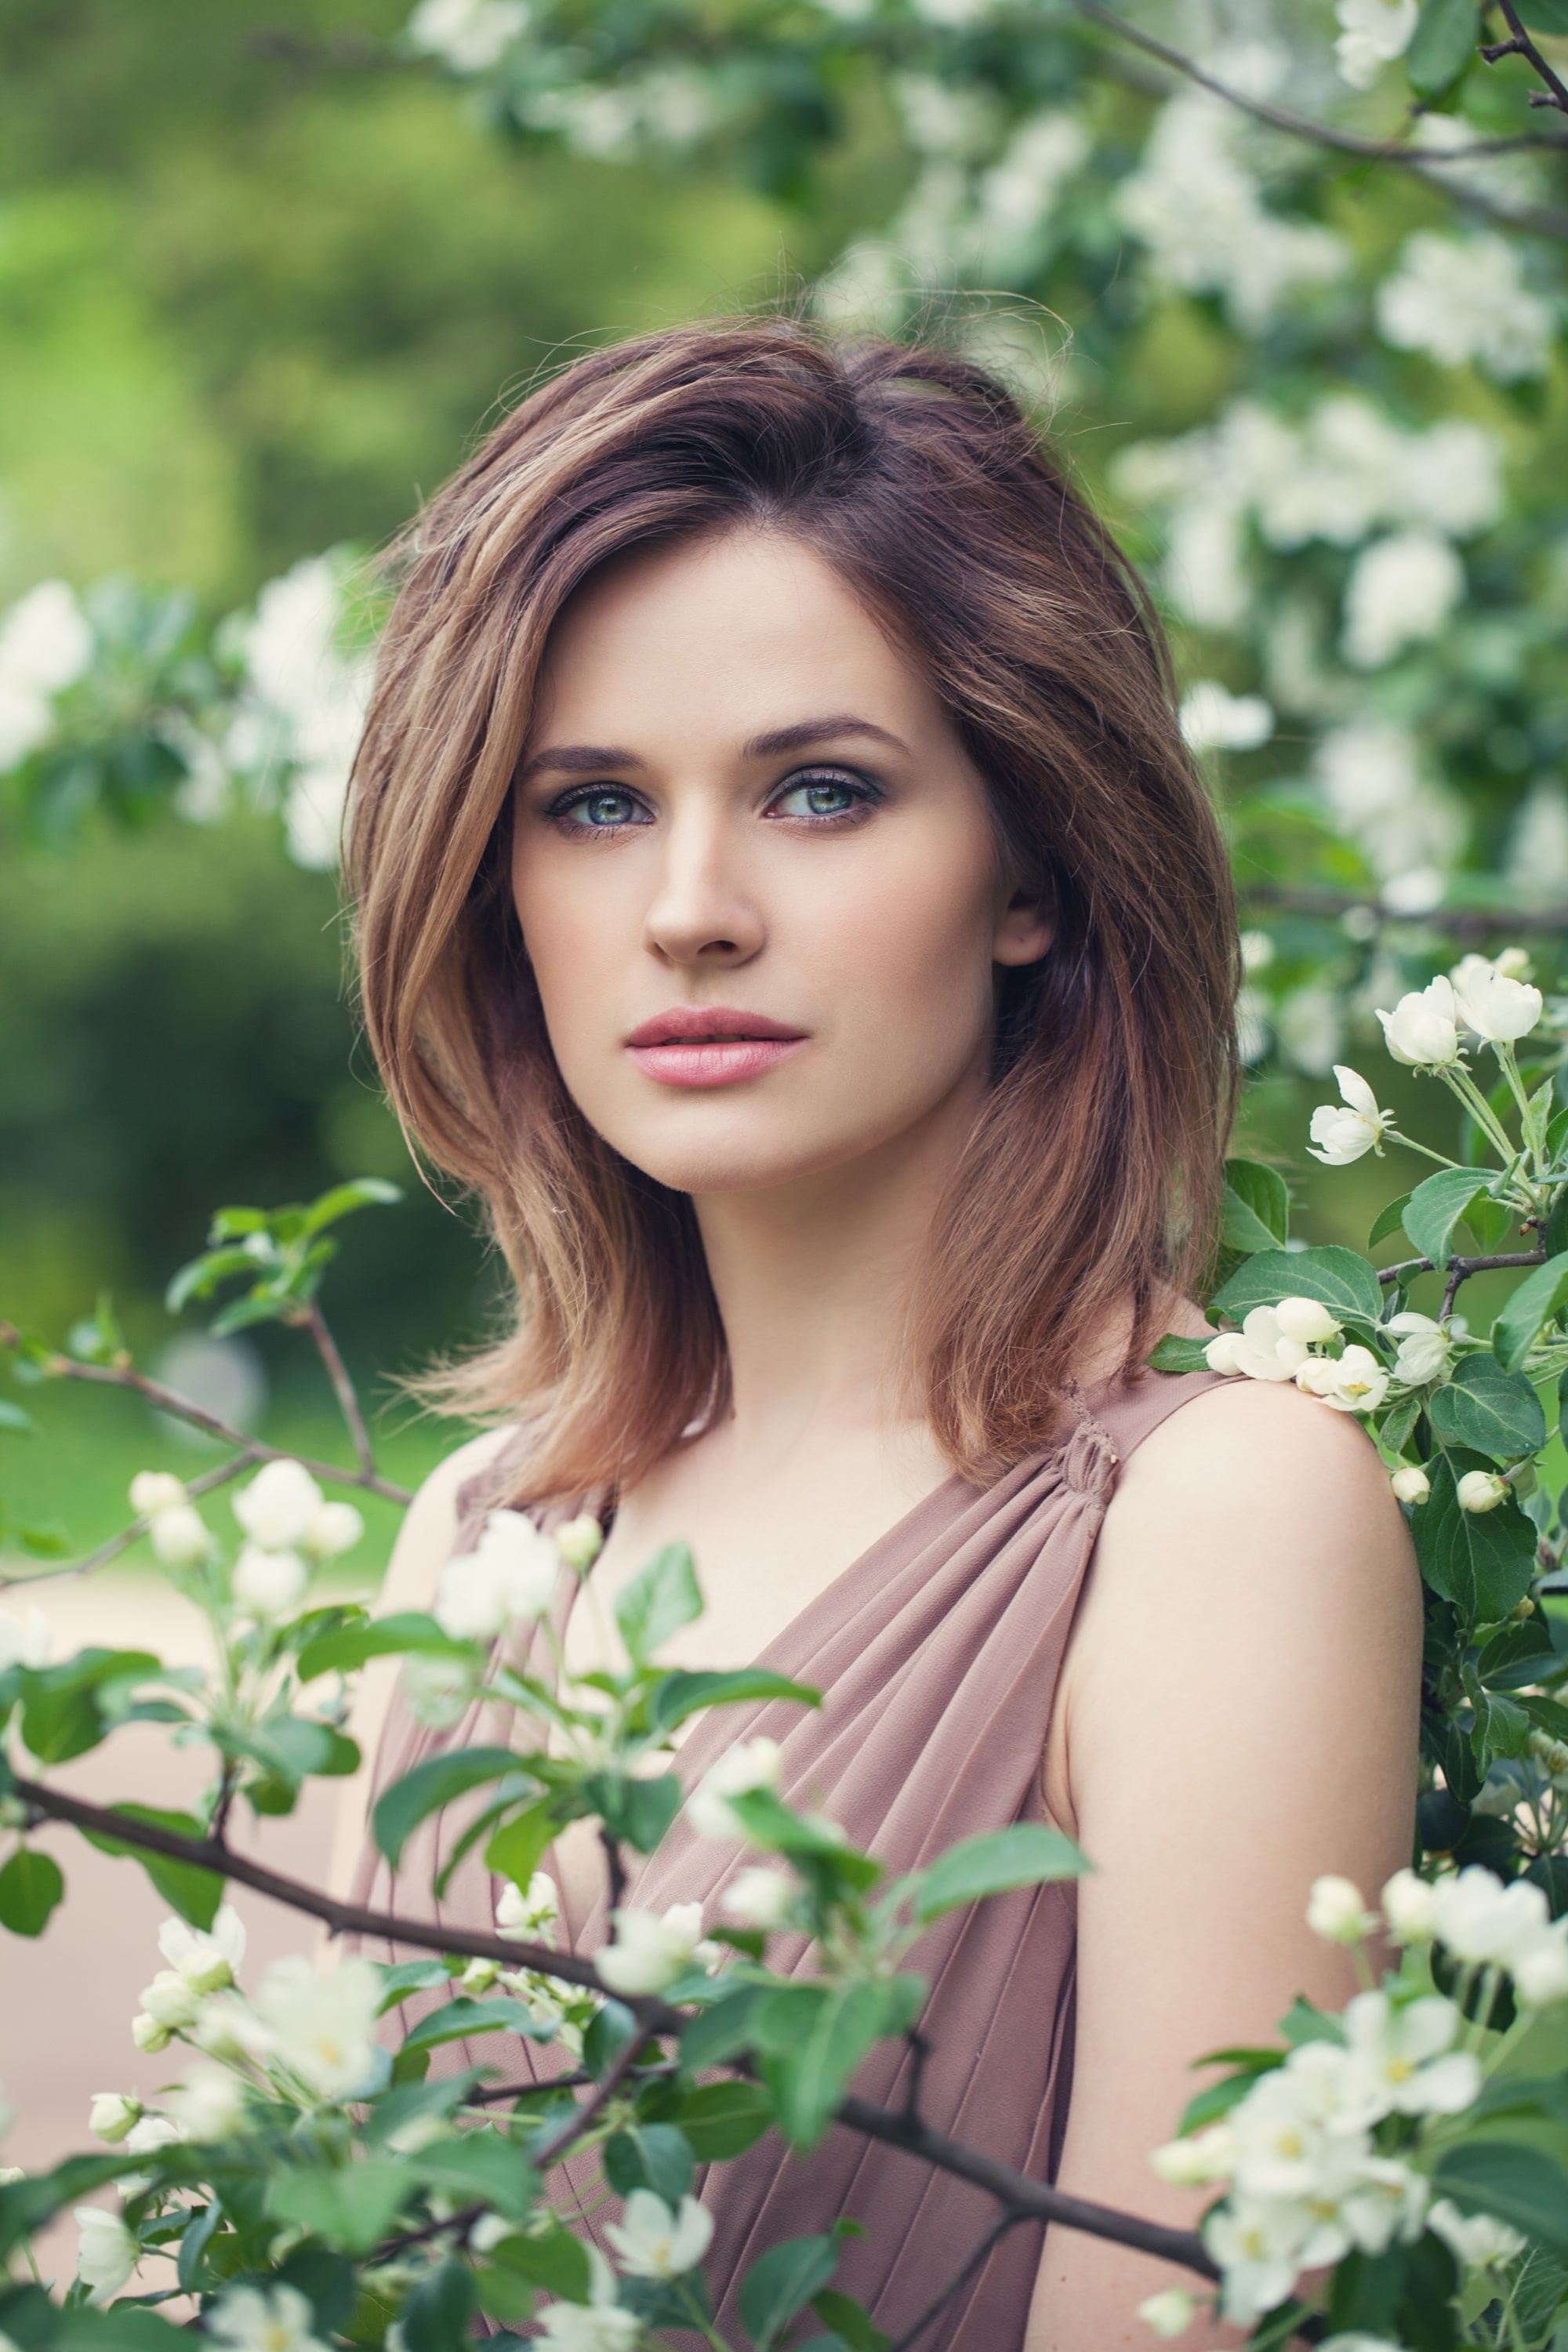 Long layered bob: Caucasian woman with brown hair surrounded by plants